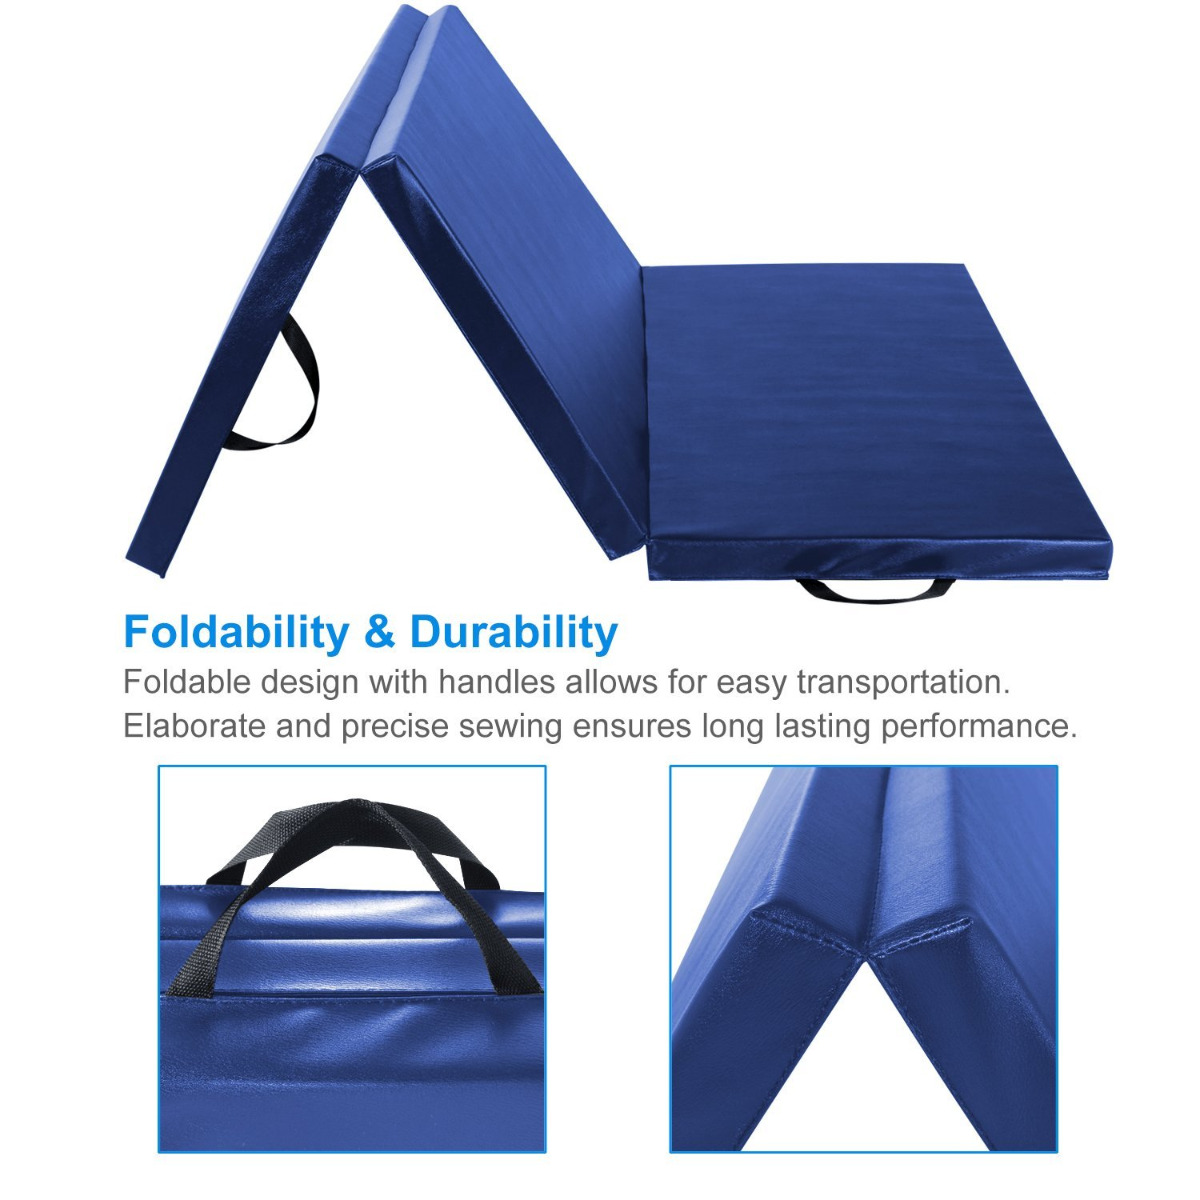 thick itm mats mat gym gymnastics big folding fitness blue panel exercise tl fdw